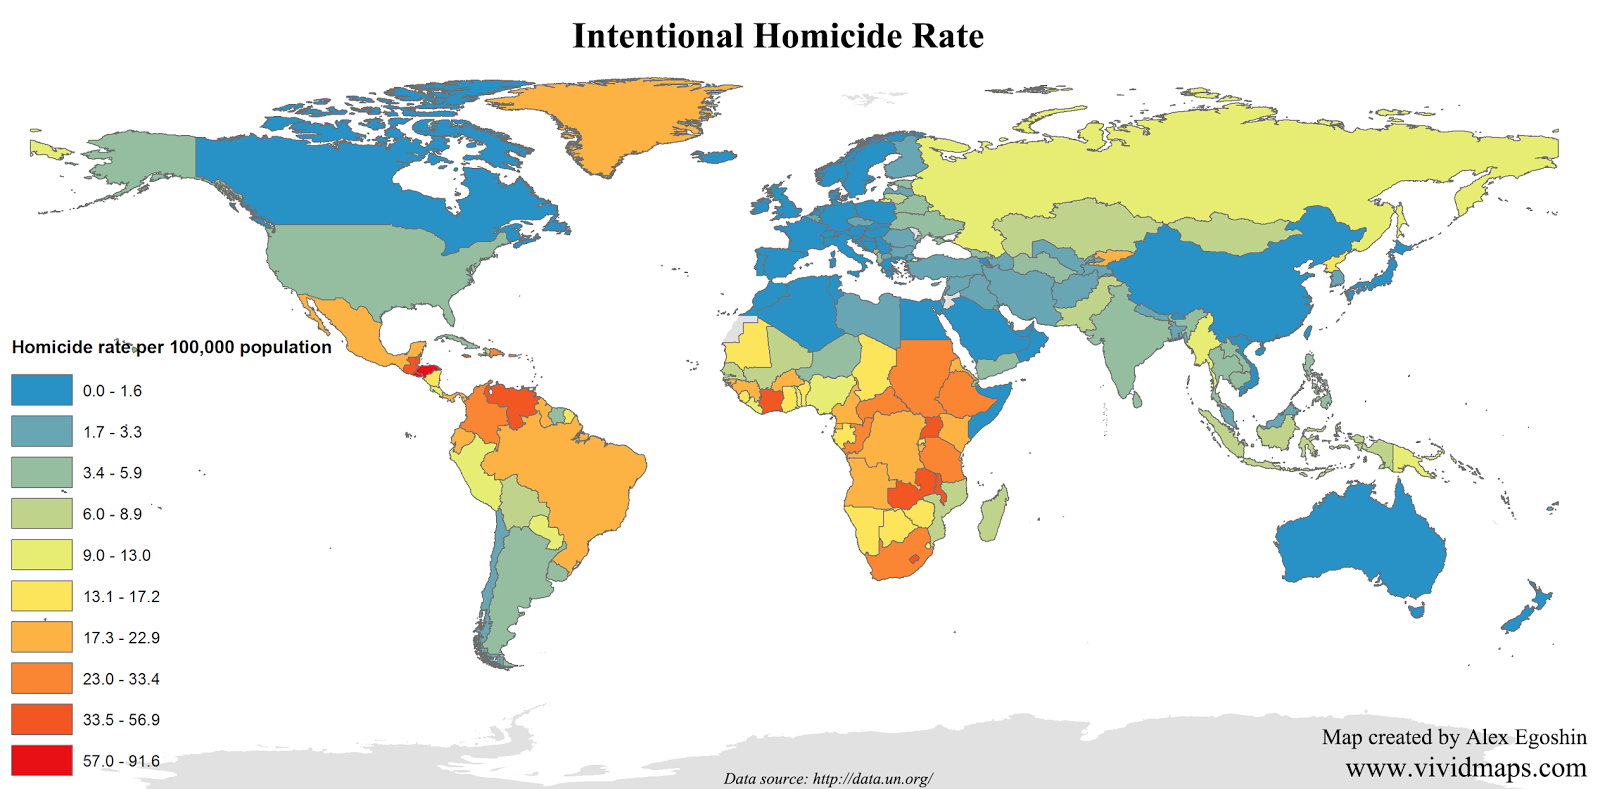 Intentional homicide rate